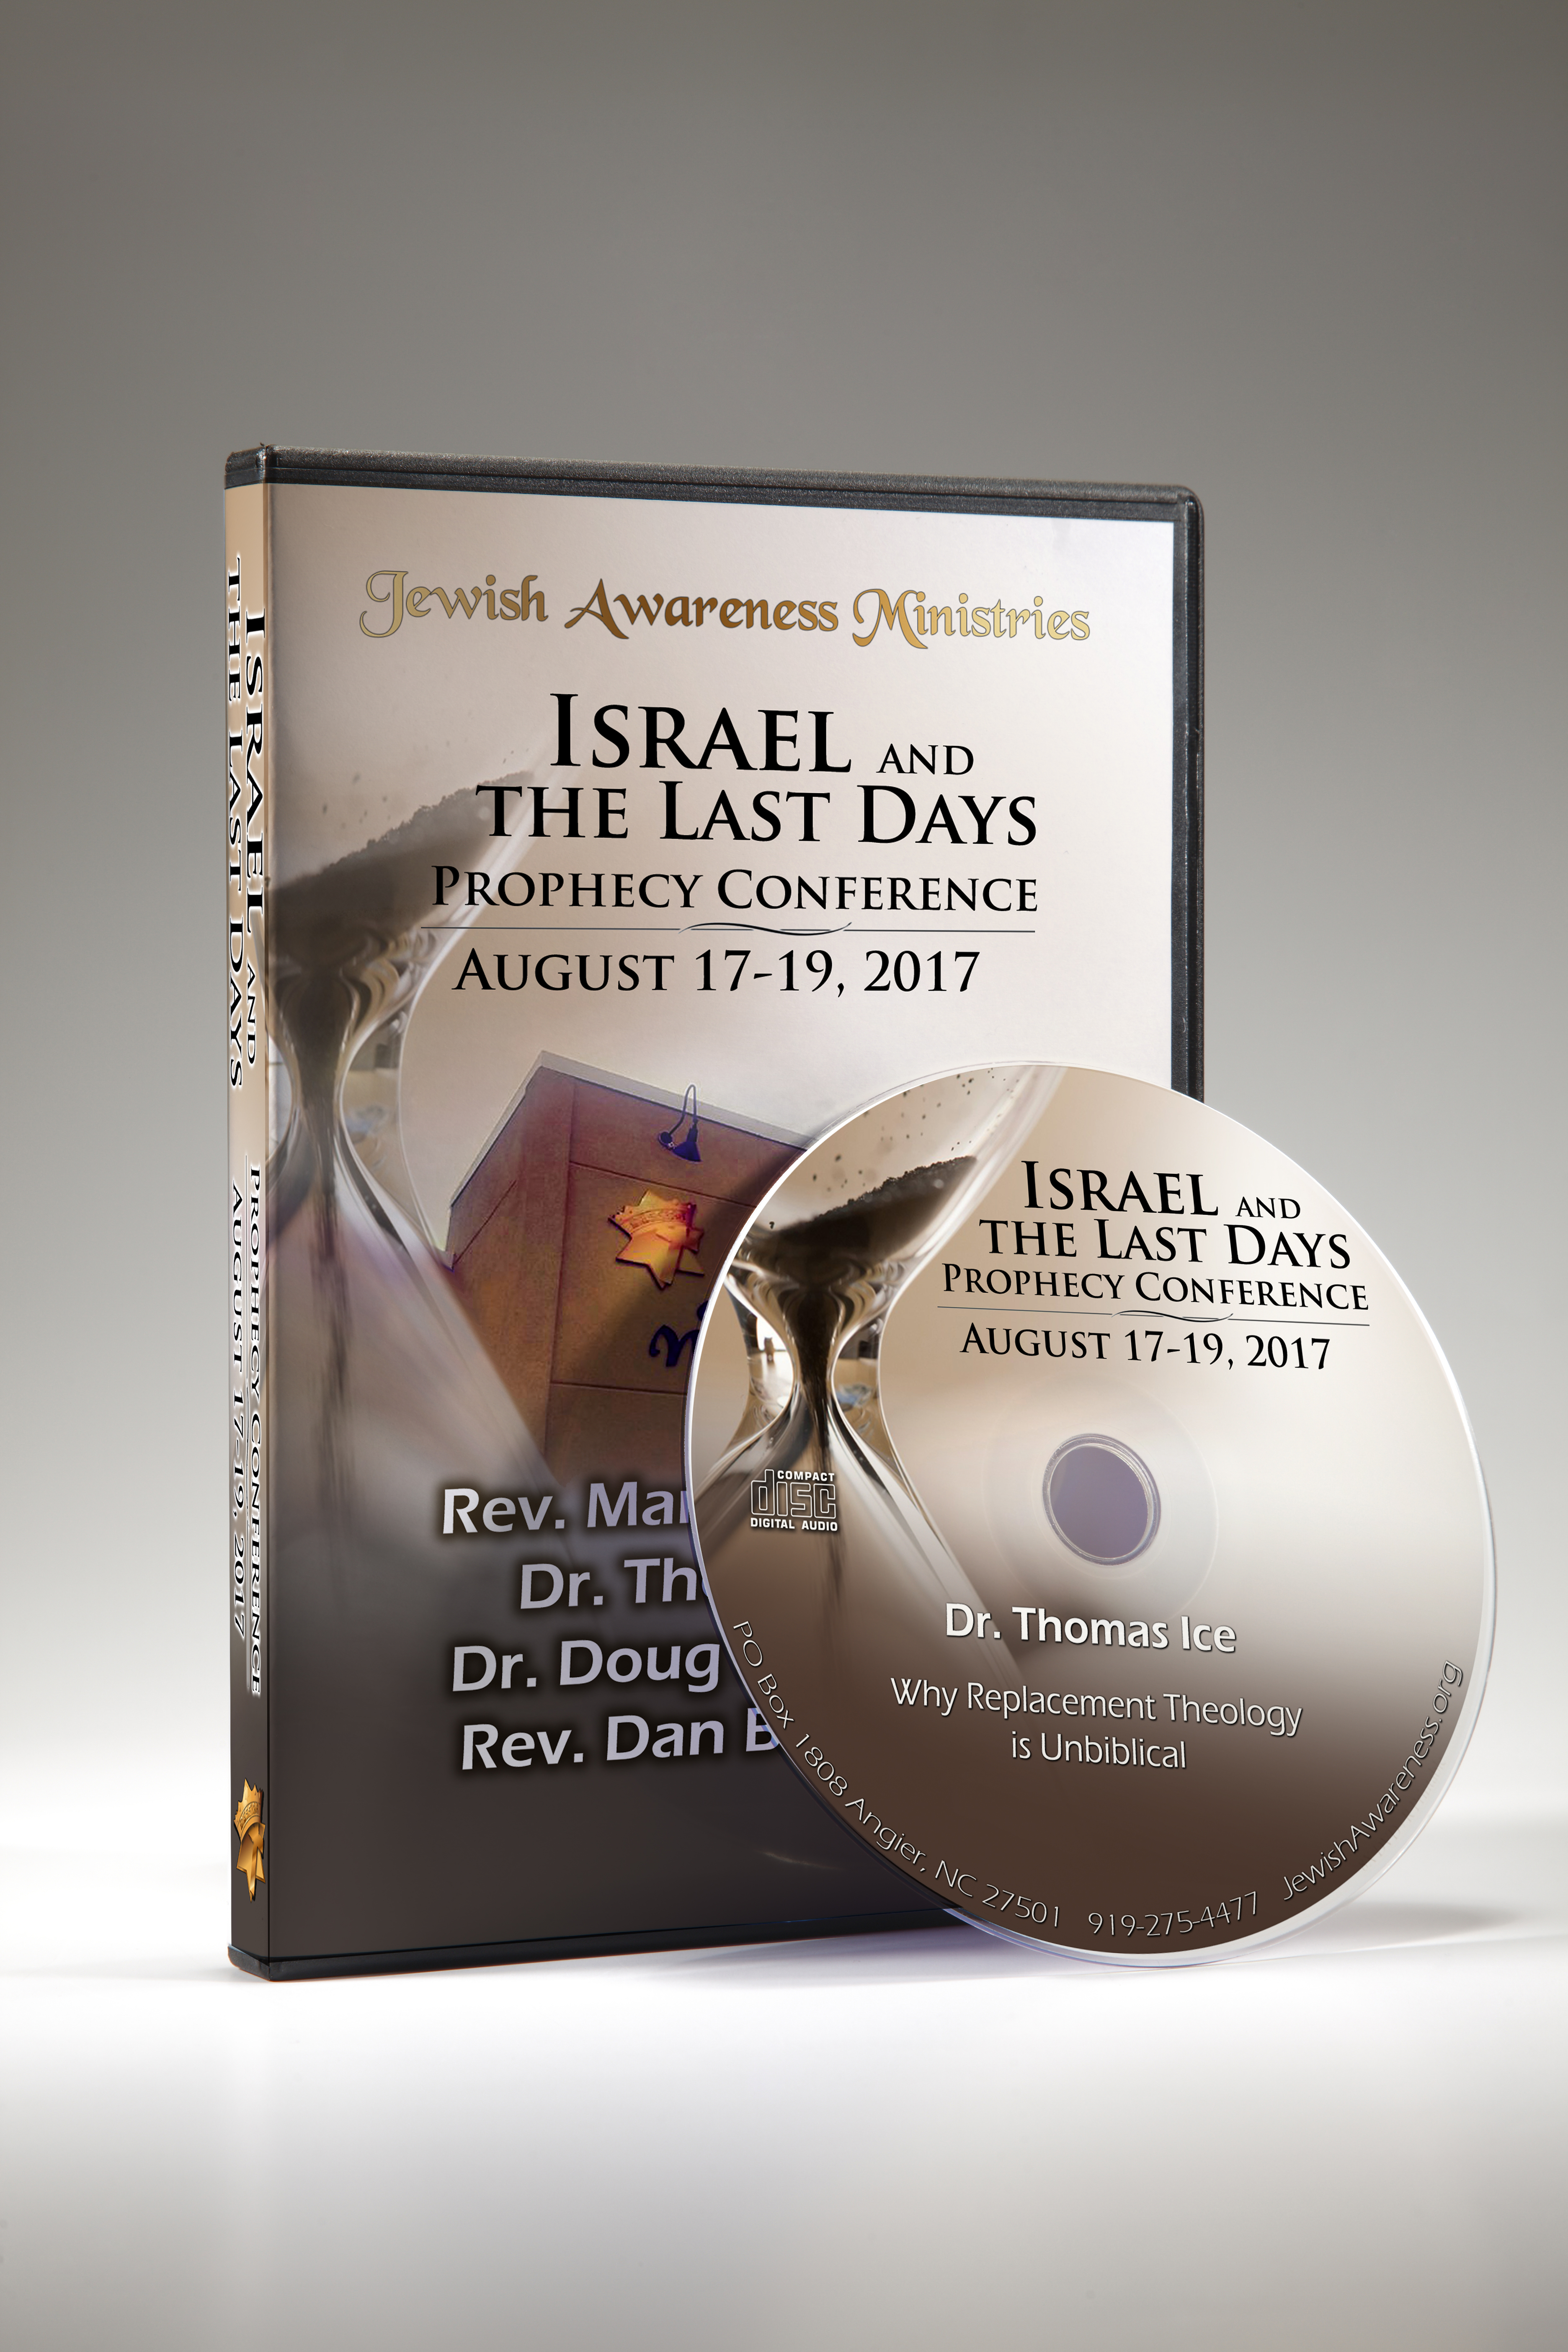 2017 Prophecy Conference: Israel and the Last Days 11 CD Set